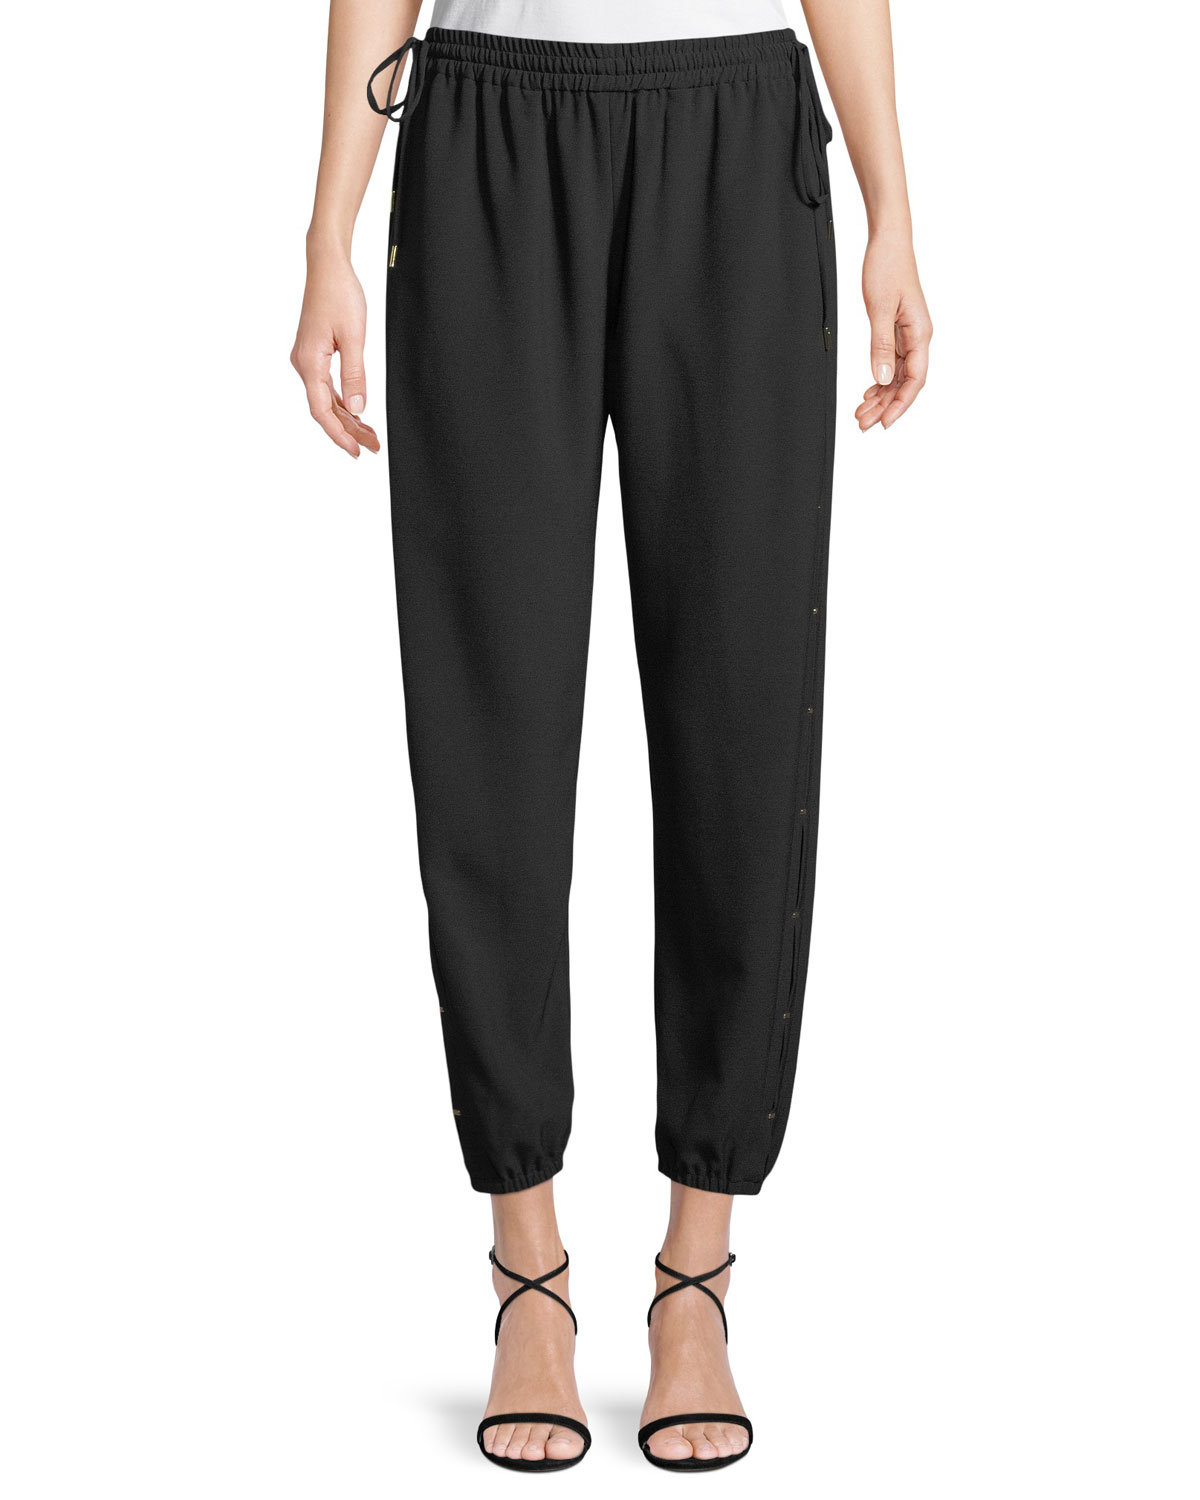 Heather Drawstring Jogger Pants